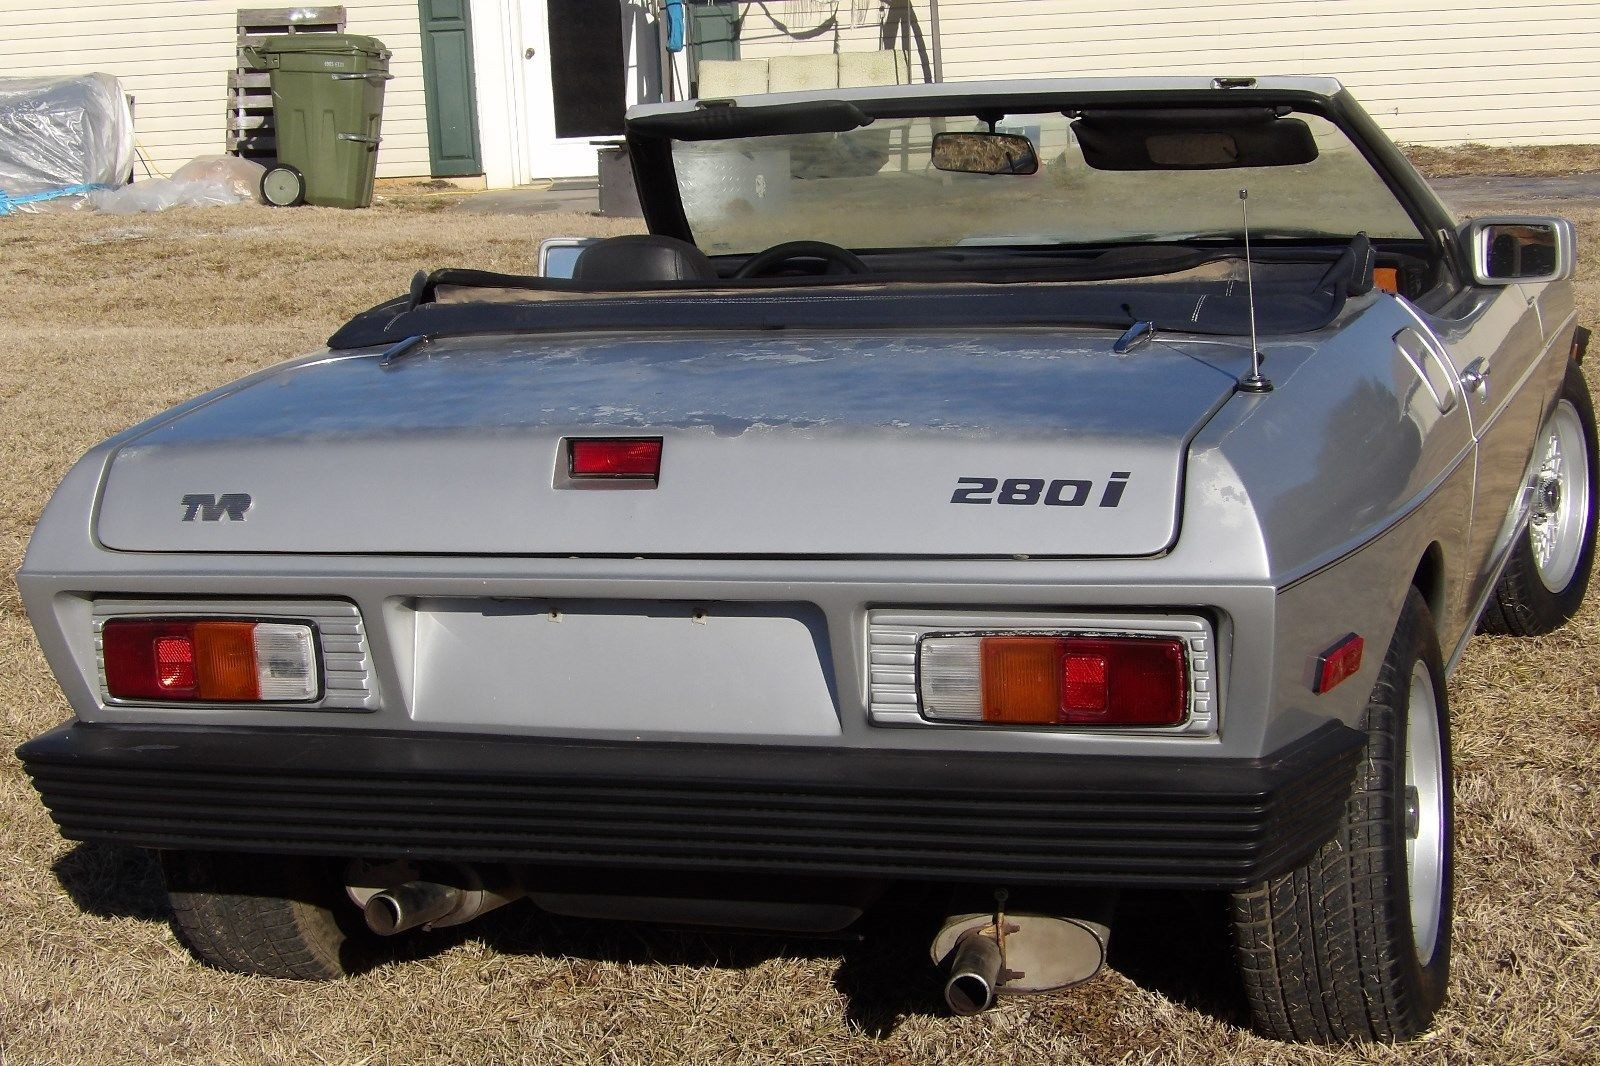 TVR 280i 1985 Convertible - MBB Collection